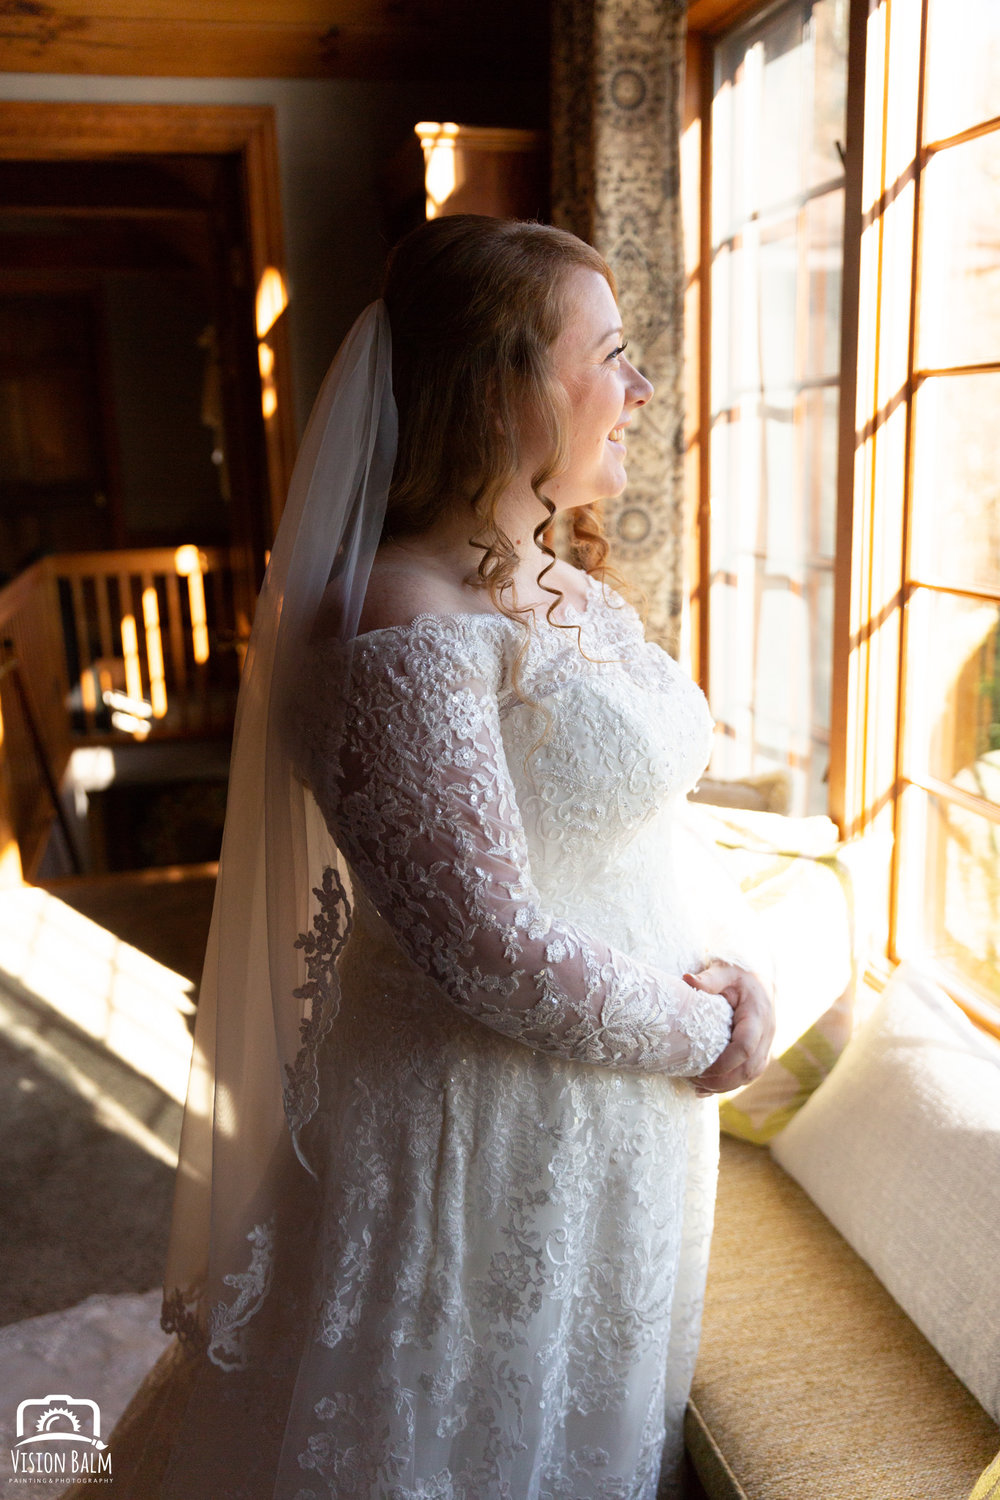 Lifestyle wedding photo of bride in her dress in Zuka's Hilltop Barn by Vision Balm in Charleston, SC.